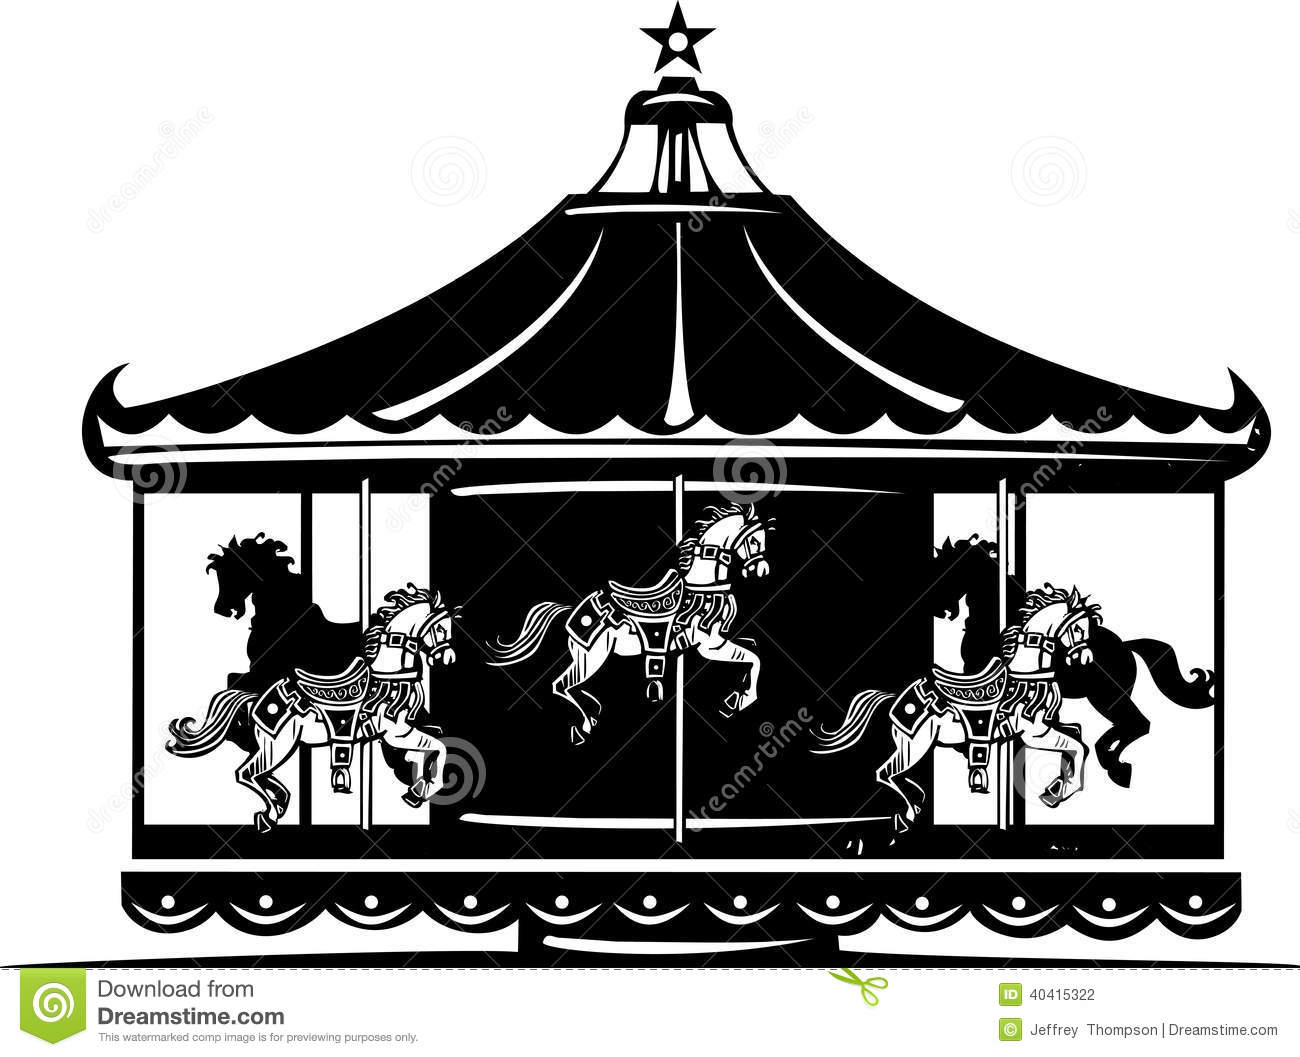 Carousel horse silhouette clip art - photo#26